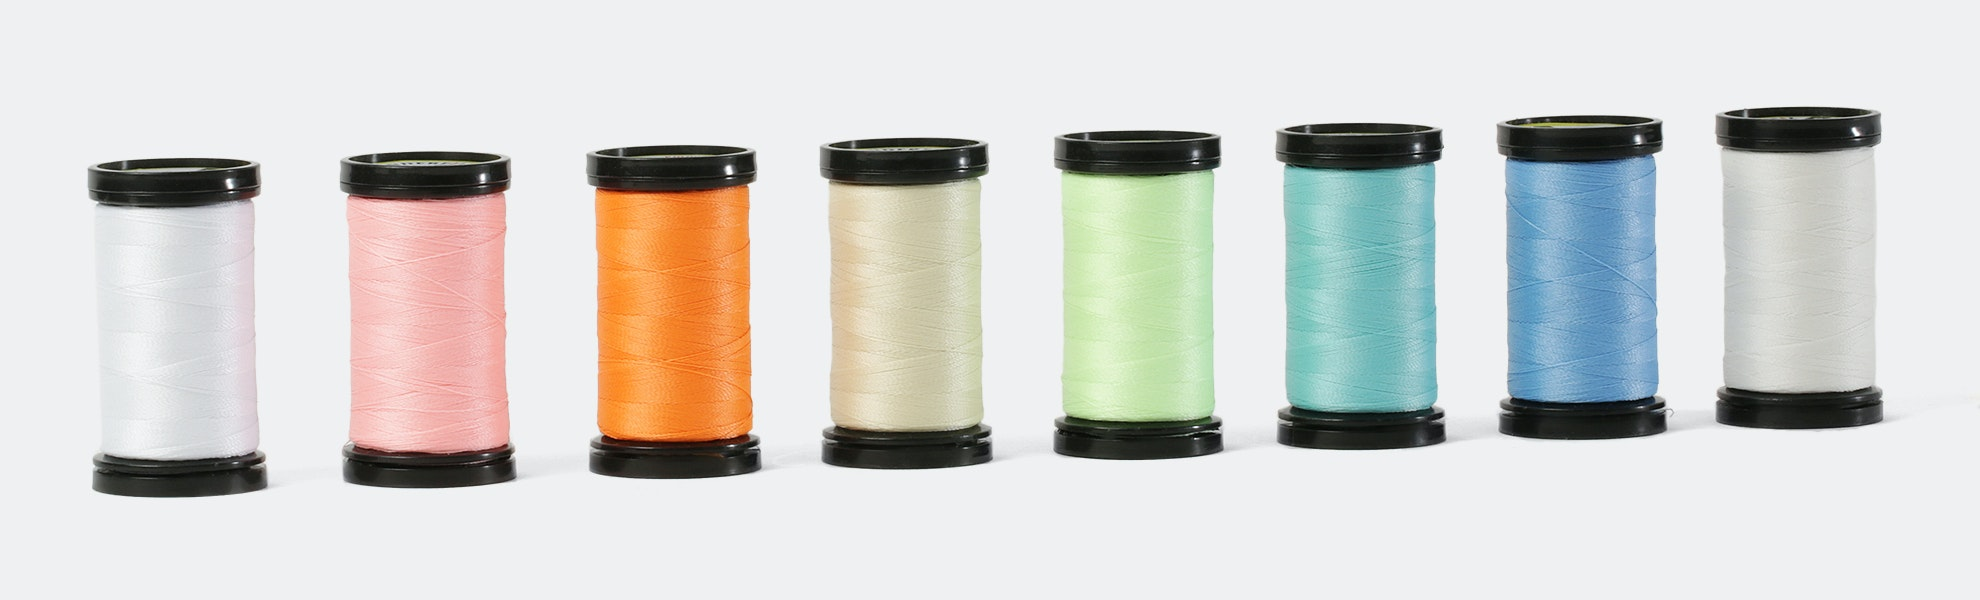 Ahrora Glow-in-the Dark Thread (8-Pack)